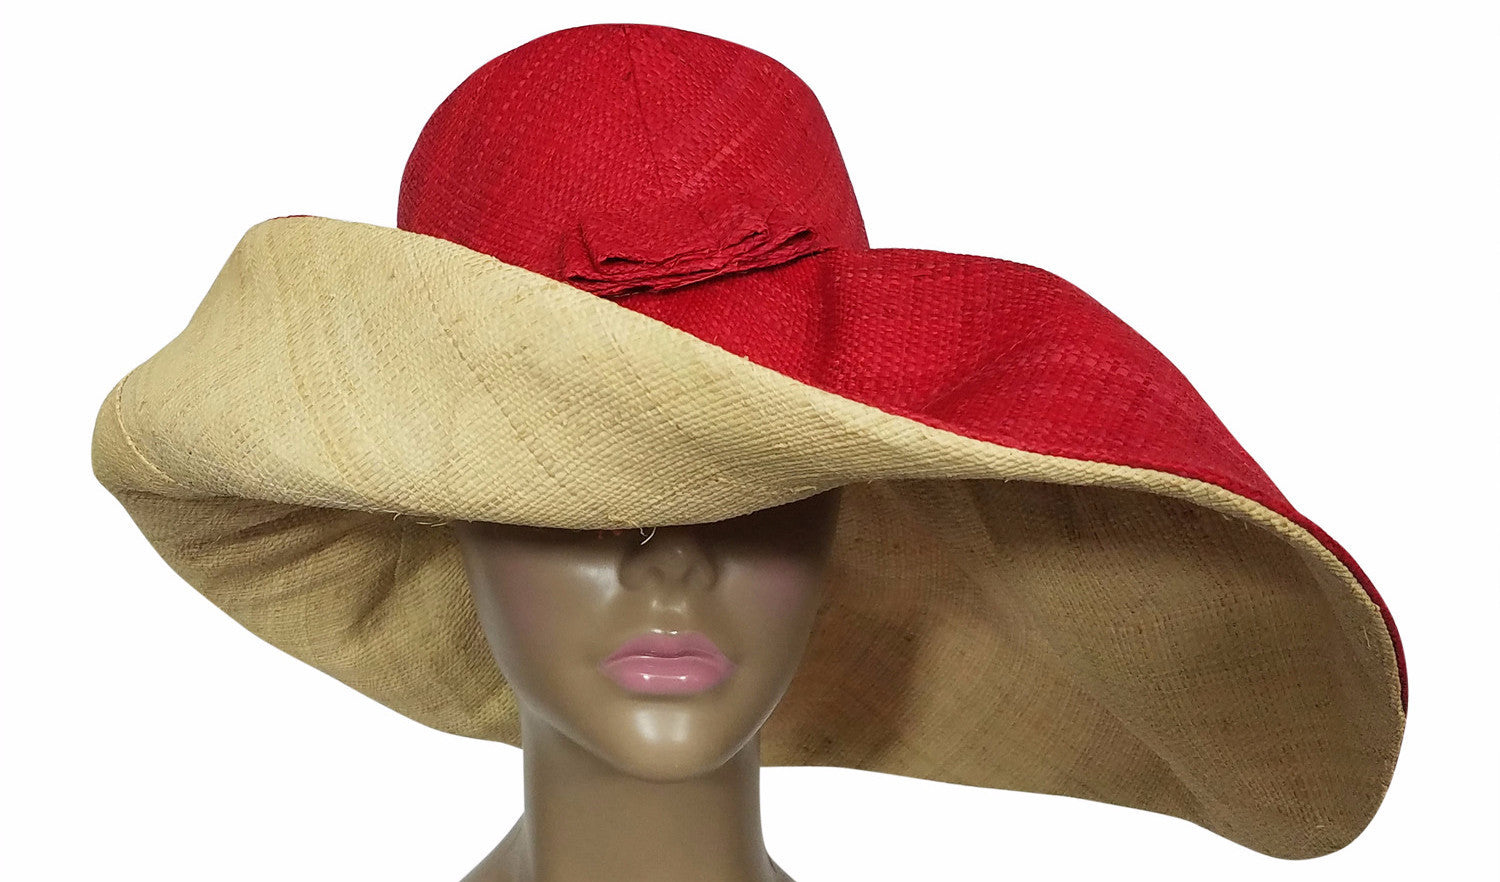 Zalika: Authentic African Hand Made Red and Natural Madagascar Big Brim Raffia Sun Hat